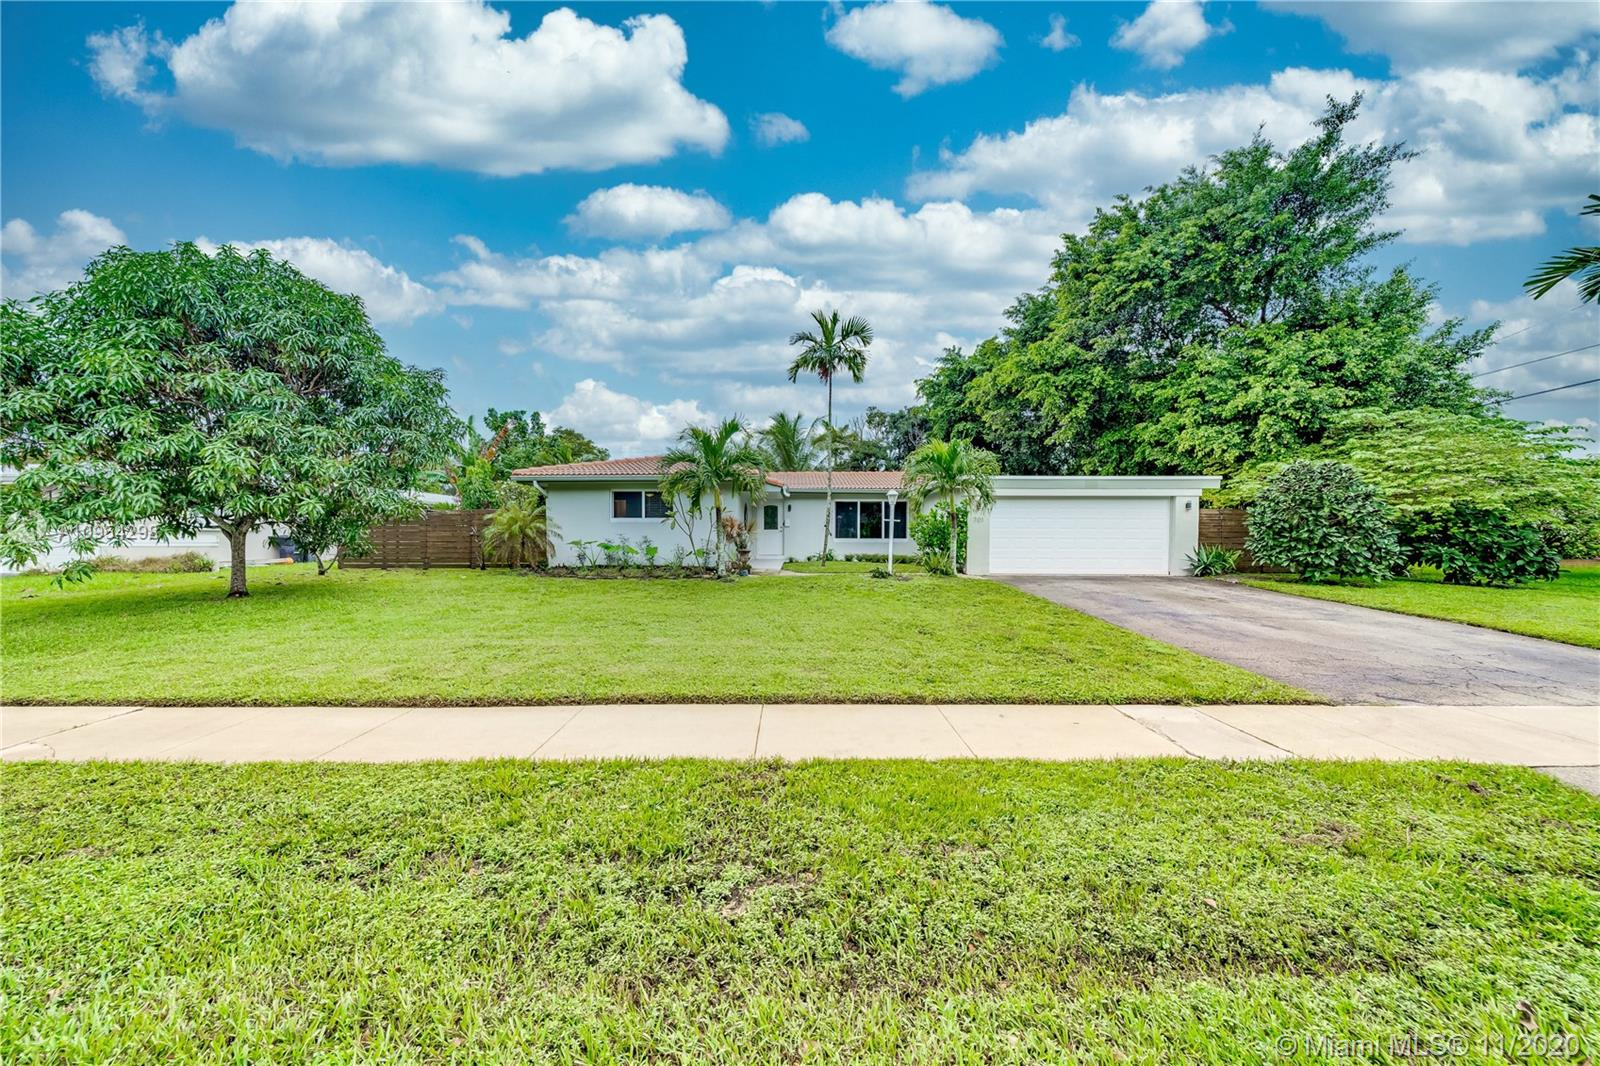 A Gardeners Delight in hot Plantation! Enjoy the foliage and mature fruit trees as you relax in your pool or sitting on your newly screened covered patio. Beautiful bright kitchen with granite counters, top of the line appliances and white shaker cabinets. Nice size laundry / pantry / utility room off the kitchen. Tile floors throughout. A/C replaced in 2015, flat roof just redone in 2020, barrel tile roof was installed in 2003, updates to the bathrooms and most importantly, hurricane impact doors and windows! This is a great place to call home!